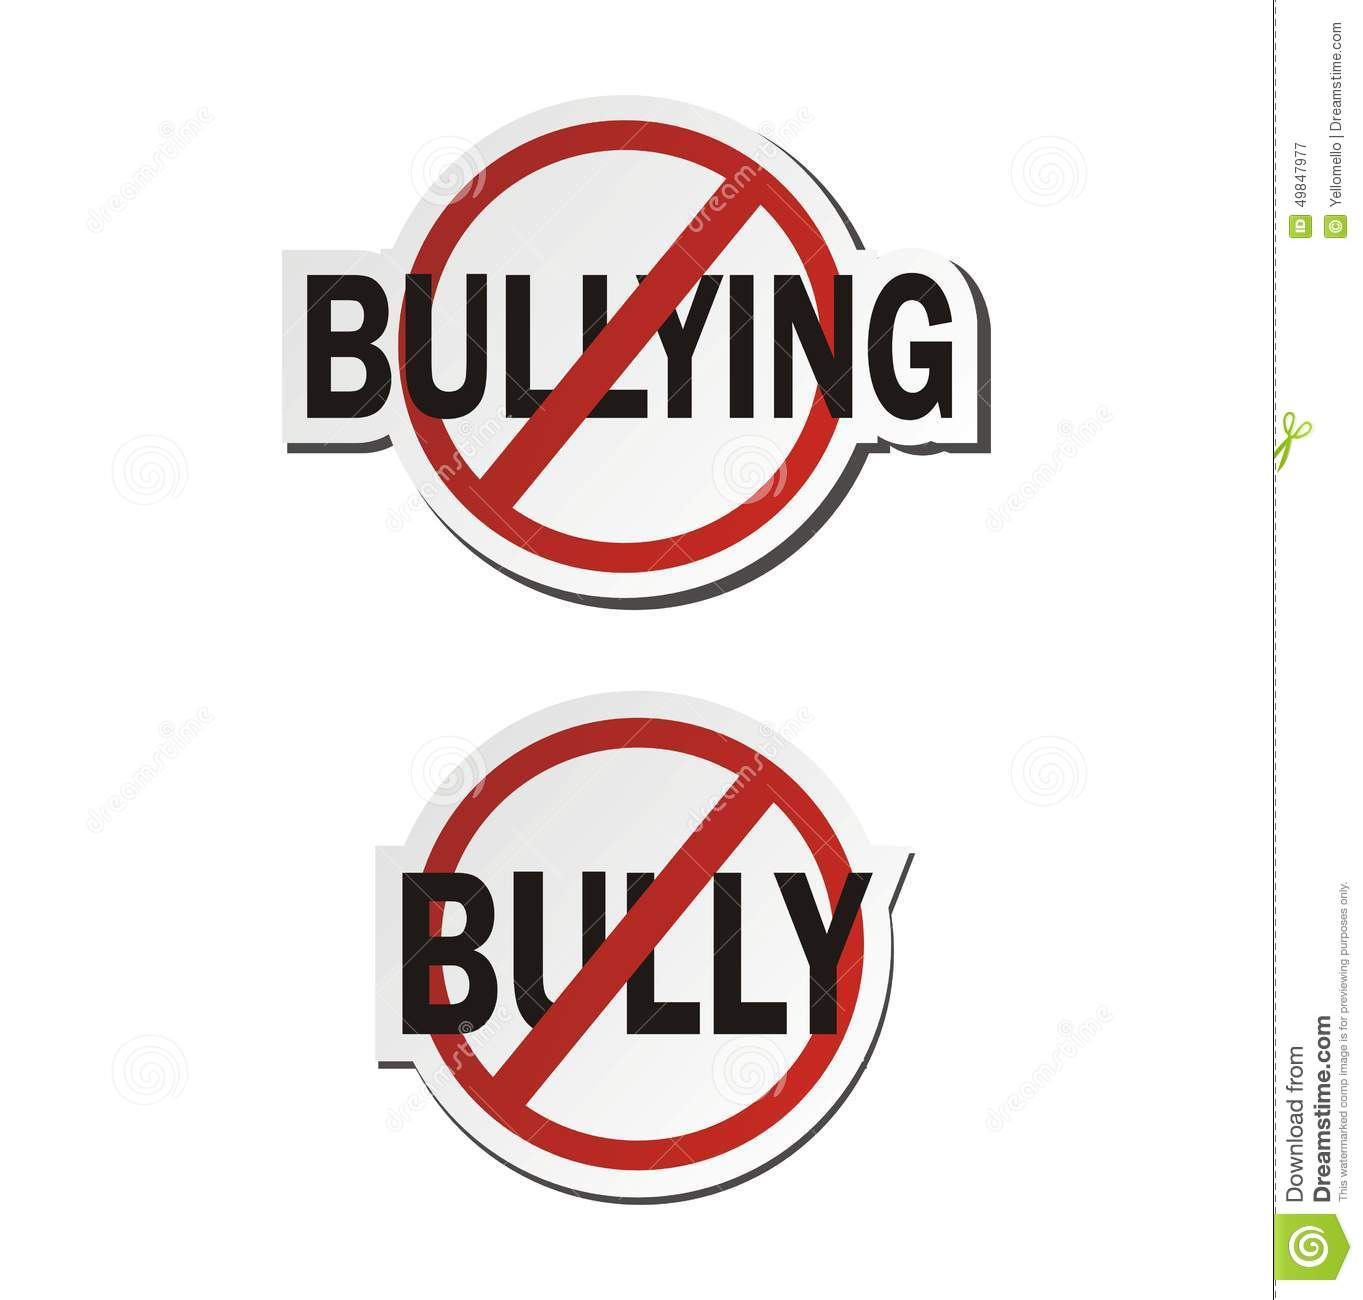 Stop bullying, stop bully - sticker sets